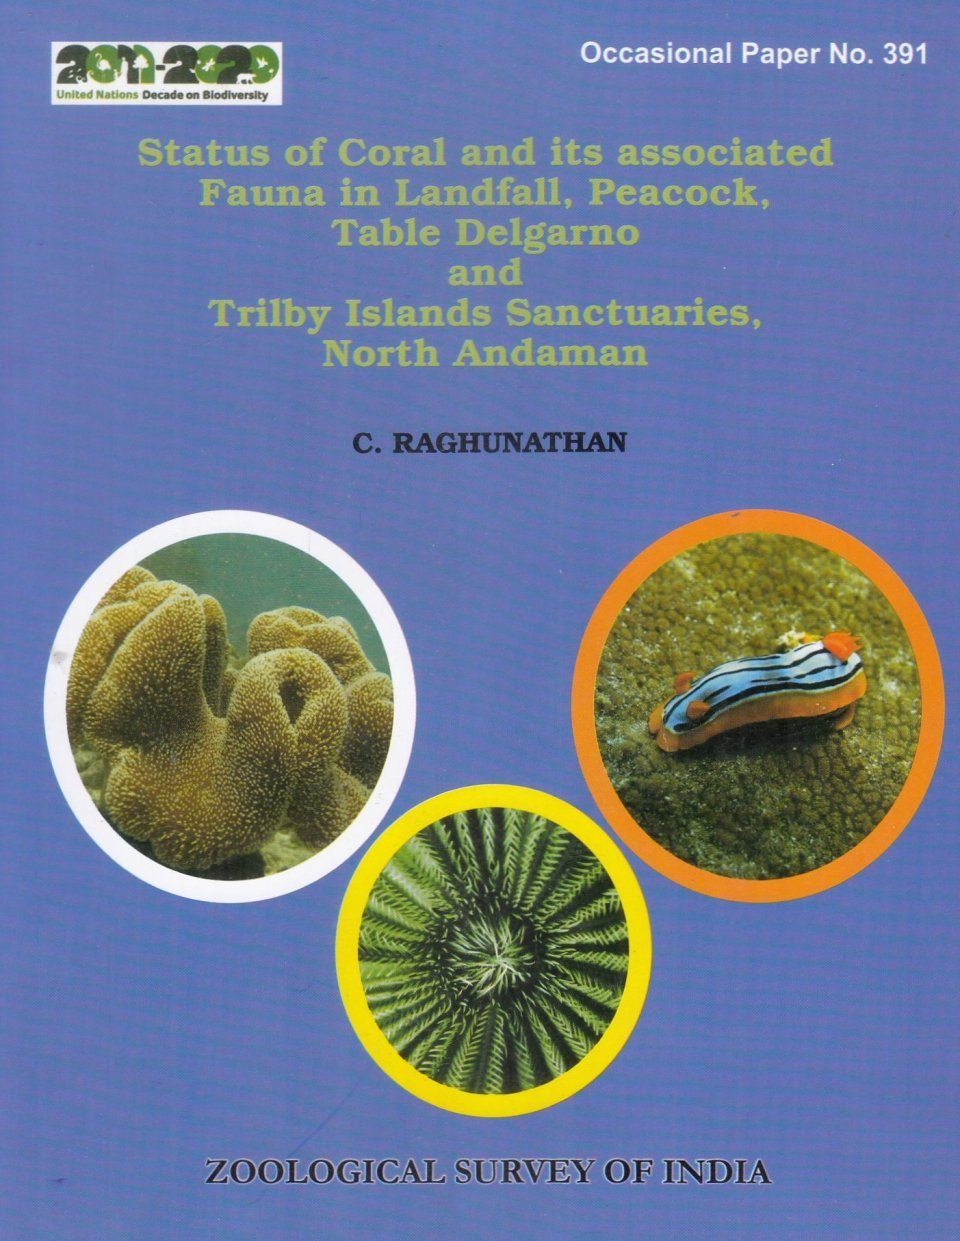 Status of Coral and Its Associated Fauna in Landfall, Peacock, Table Delgarno and Trilby Islands Sanctuaries, North Andaman